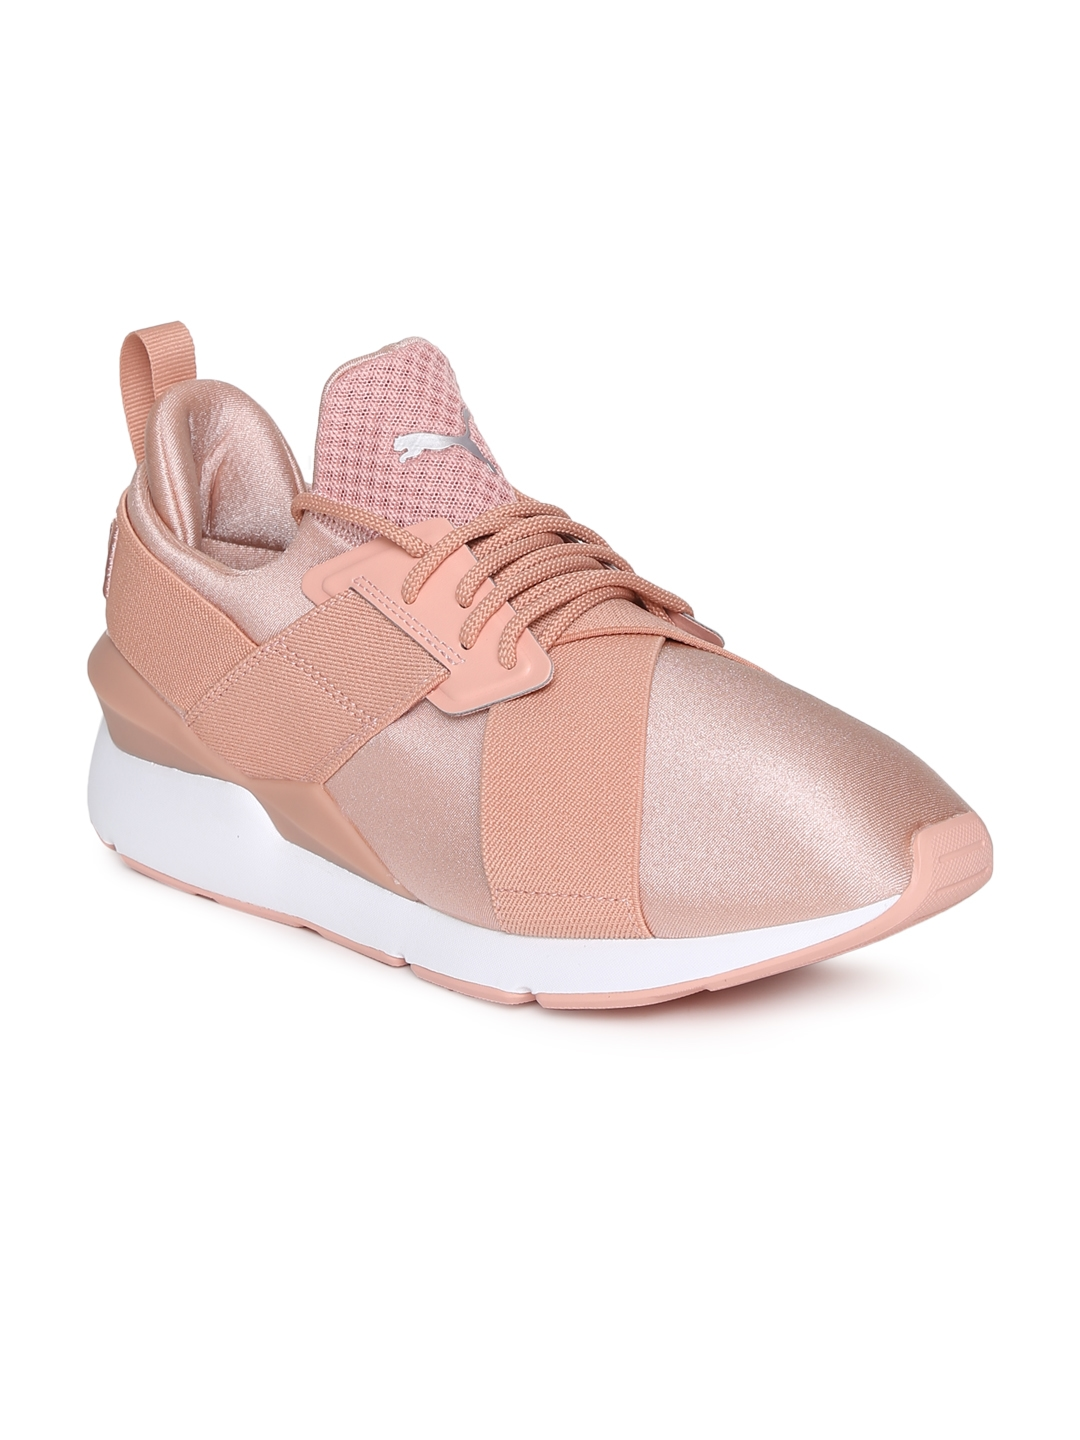 ed530380c21 Buy Puma Women Pink Muse Satin EP Sneakers - Casual Shoes for Women ...